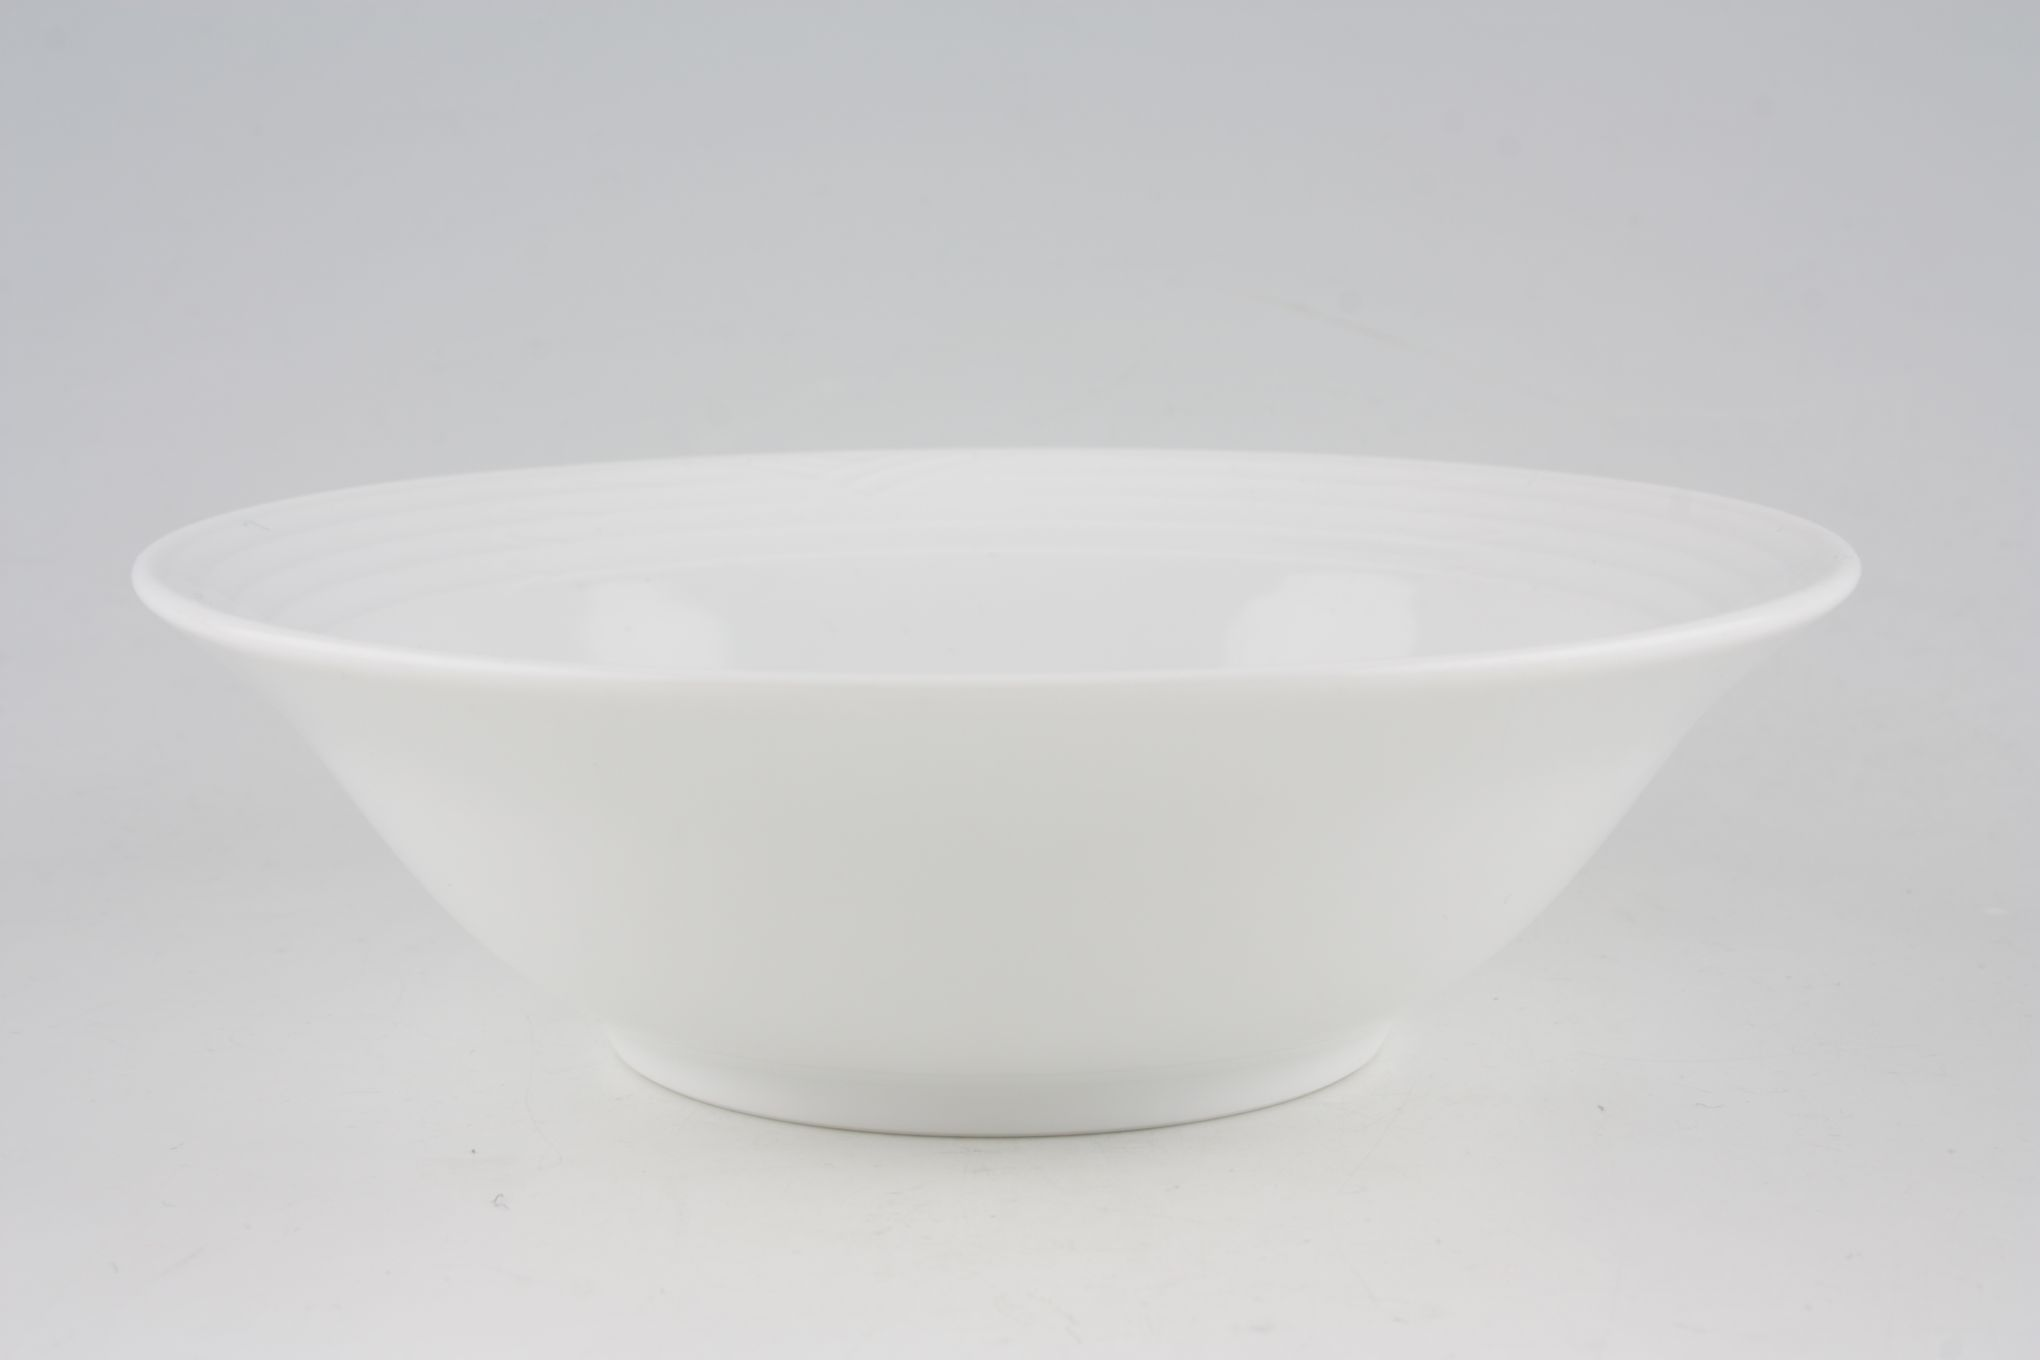 Noritake Arctic White Oatmeal / Cereal / Soup 16.9cm thumb 2